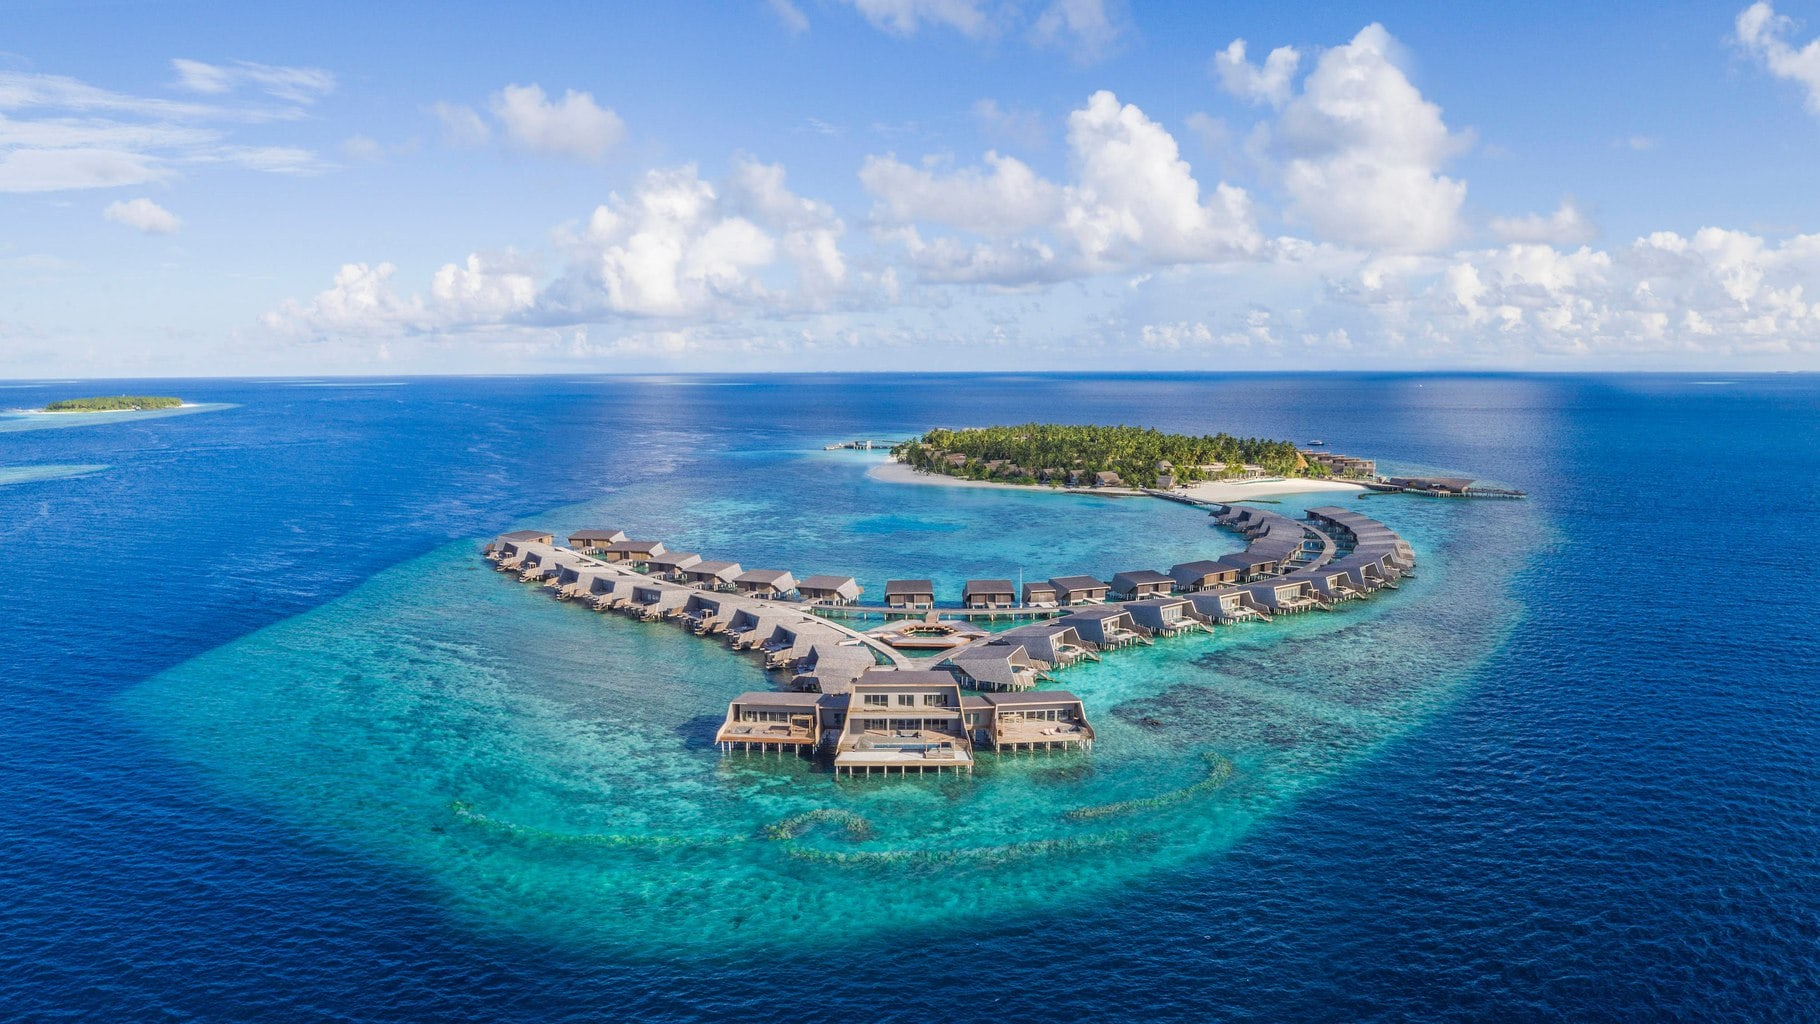 Drone shot of St Regis Maldives Vommuli Resort